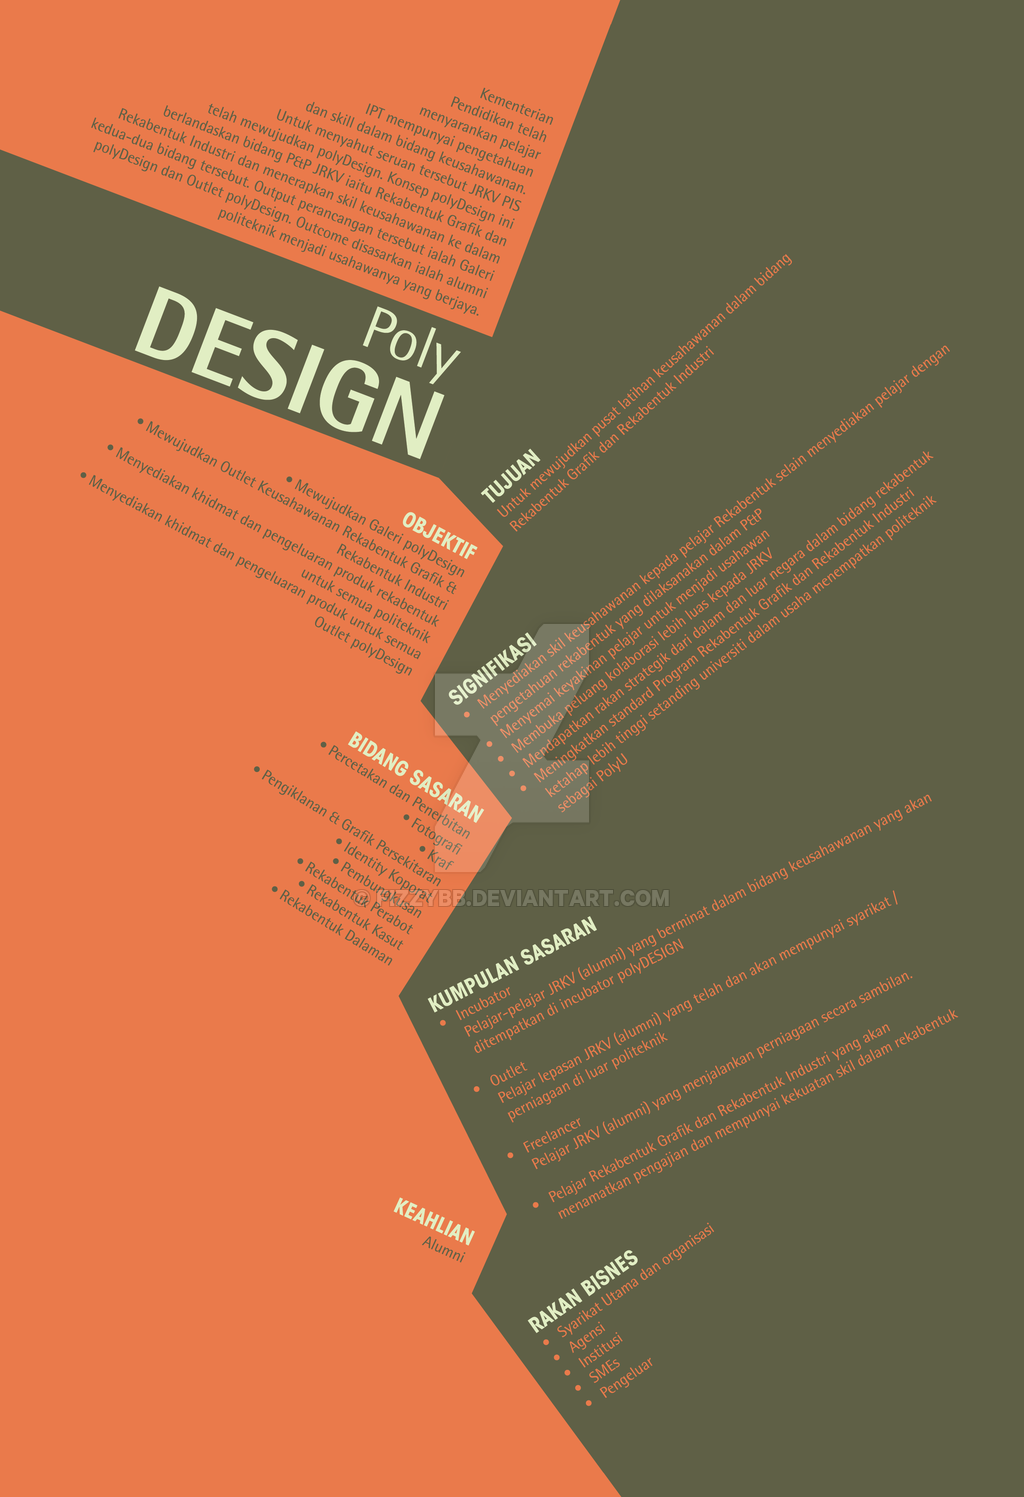 Poster design hierarchy - App Used Adobe Indesign One Of My Work For The Typographic System Topic For Typography 2 Class